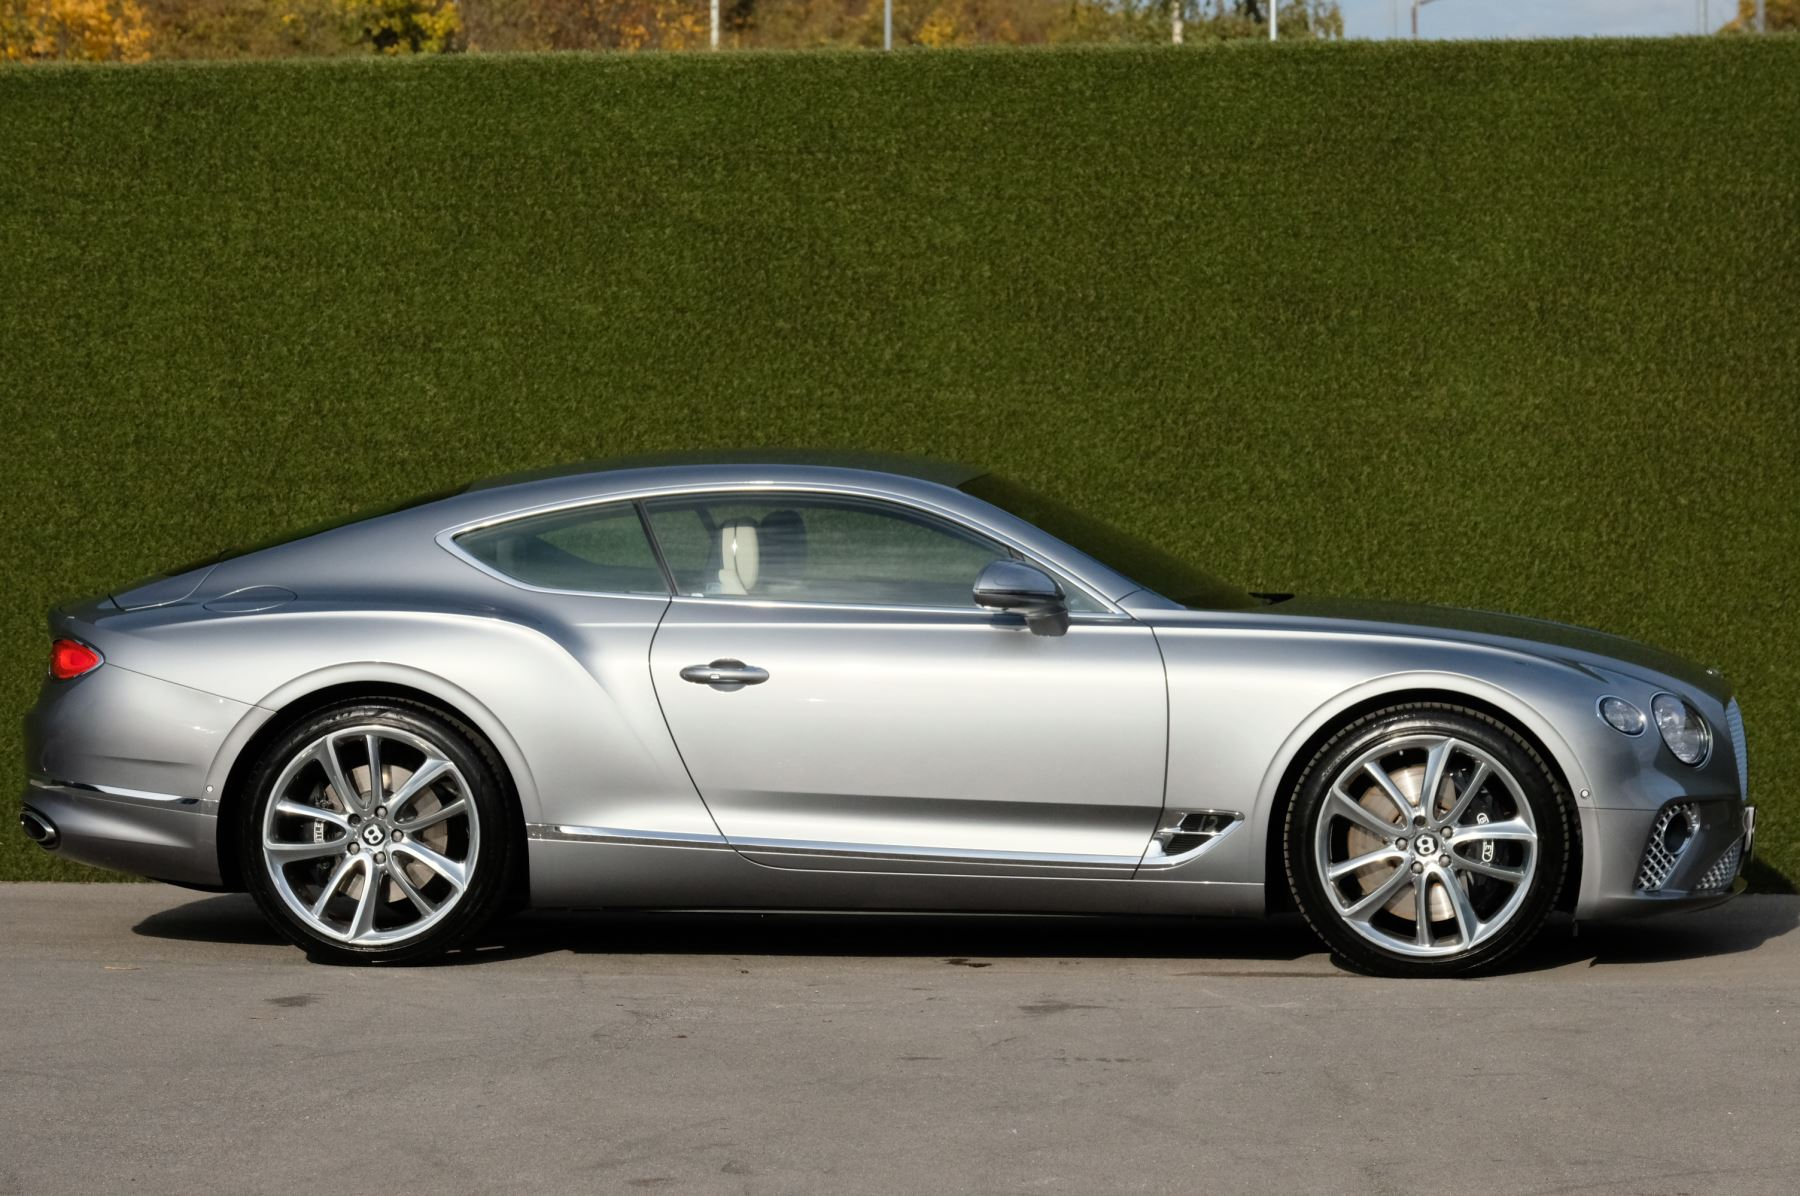 Bentley Continental GT 6.0 W12 2dr Mulliner Driving Specification image 3